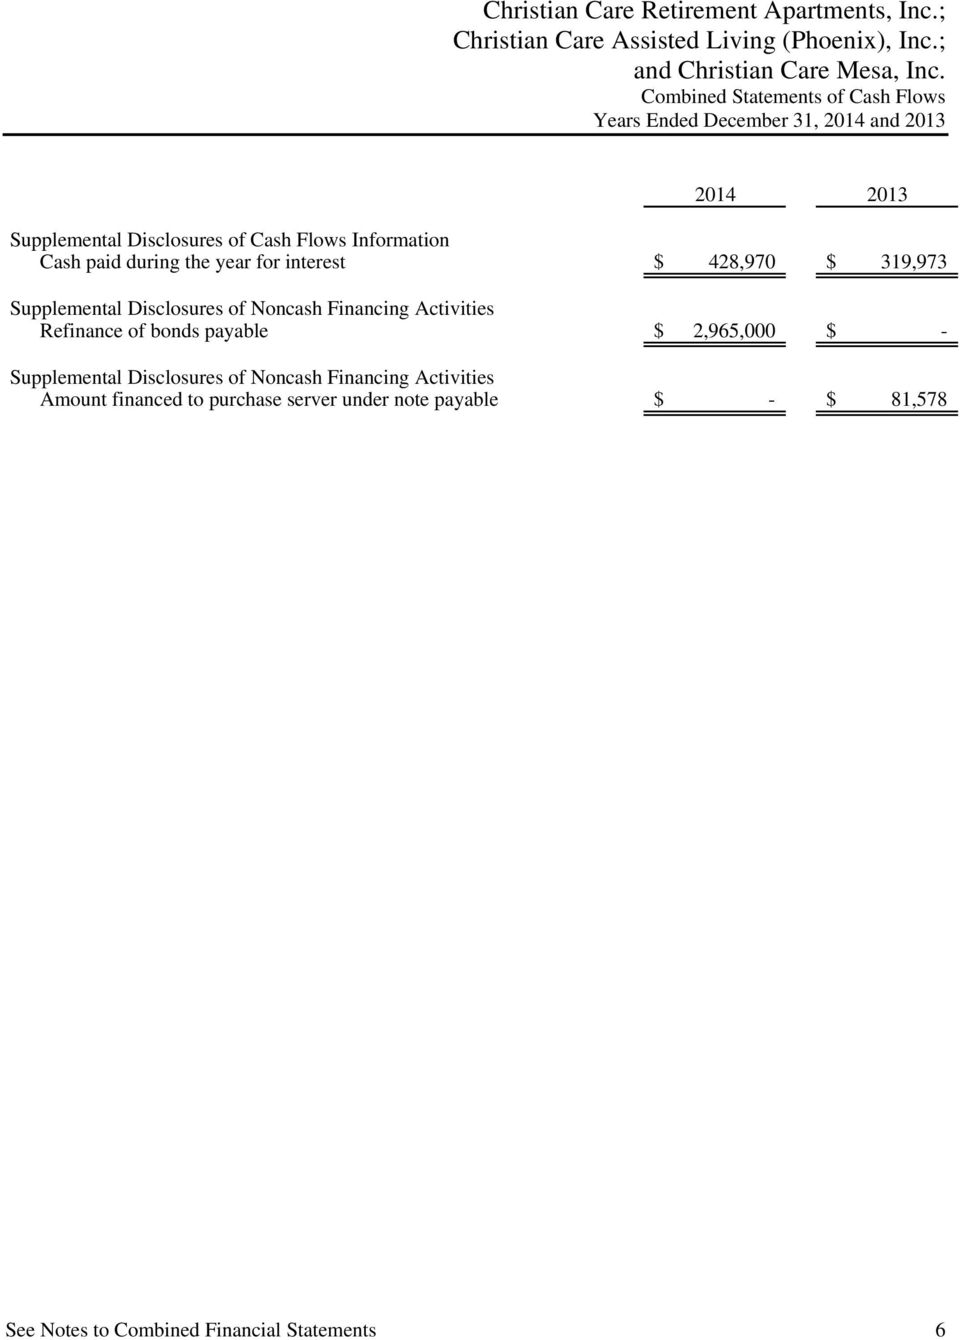 Noncash Financing Activities Refinance of bonds payable $ 2,965,000 $ - Supplemental Disclosures